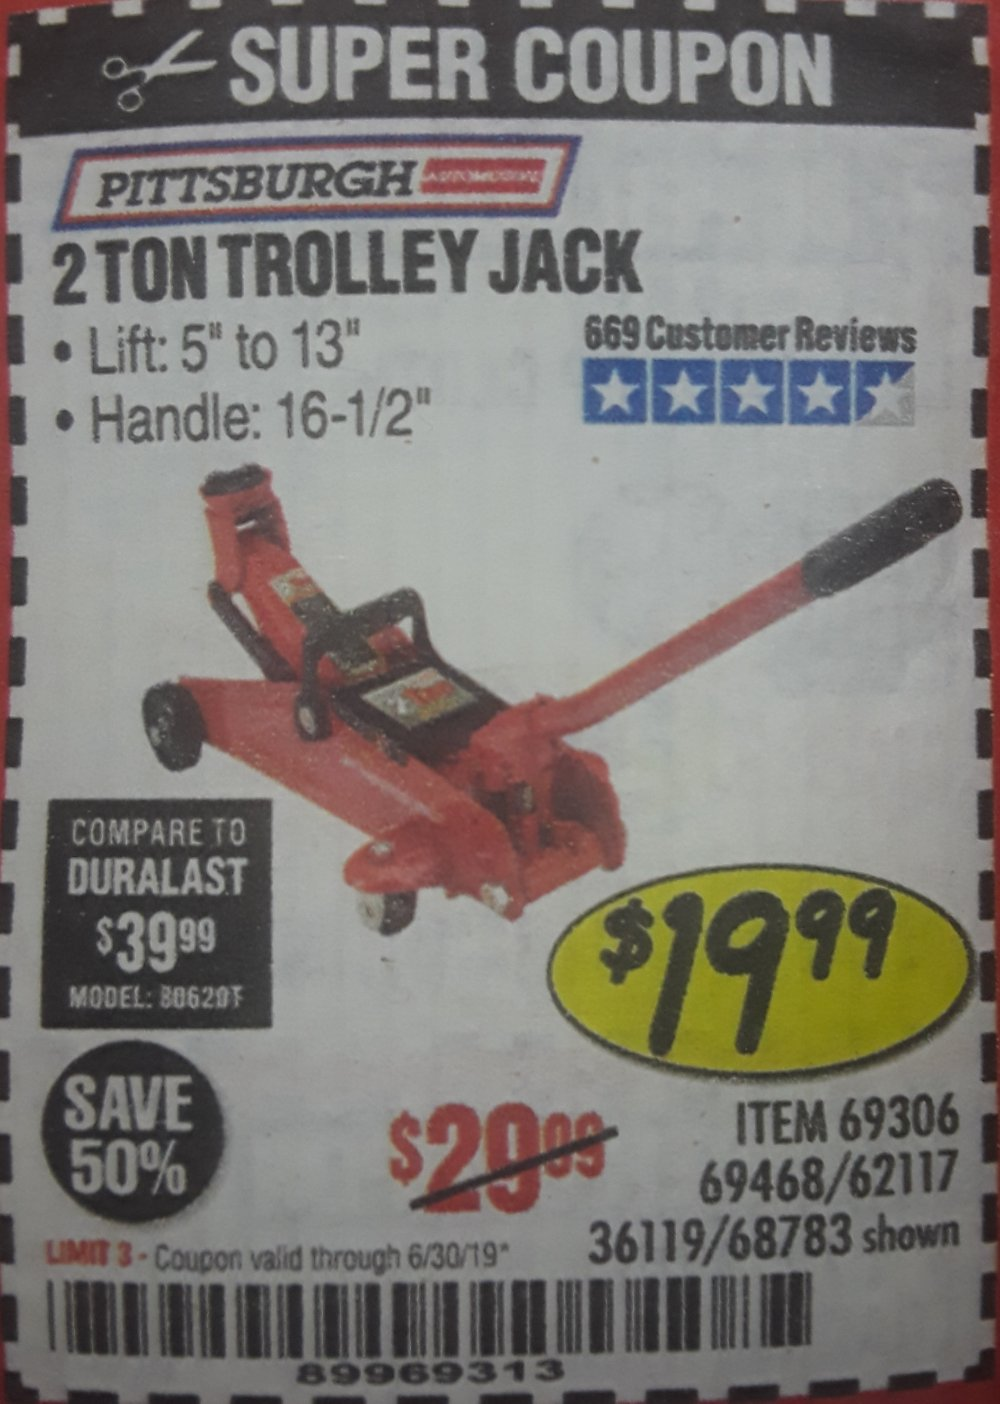 Harbor Freight Coupon, HF Coupons - 2 Ton Trolley Jack